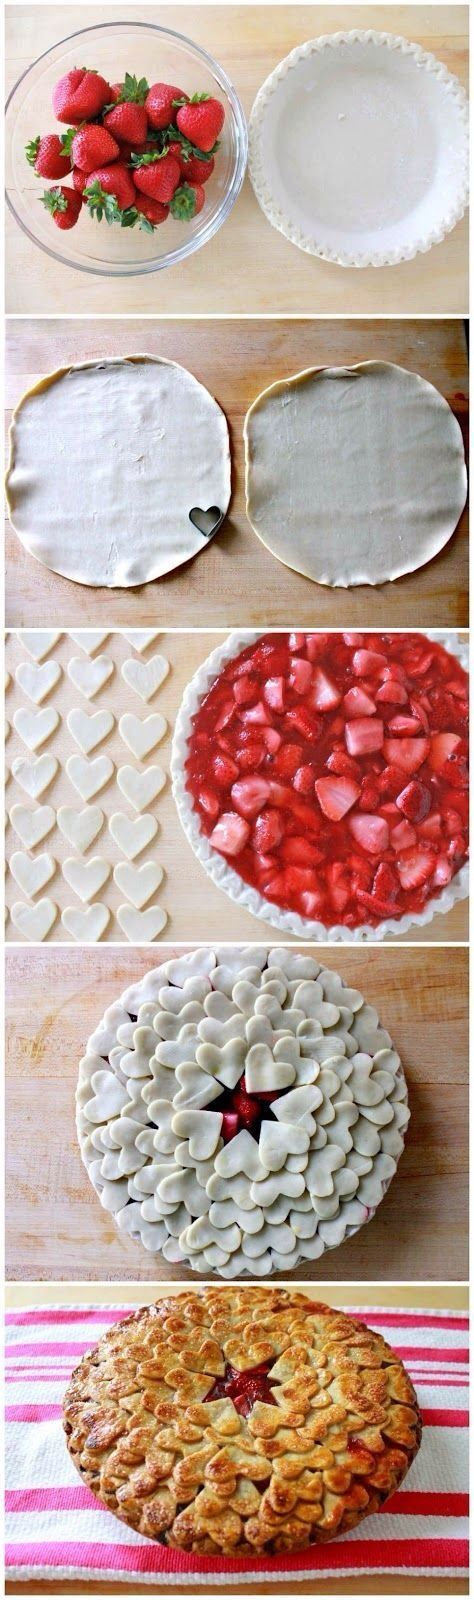 valentines-strawberry-pie